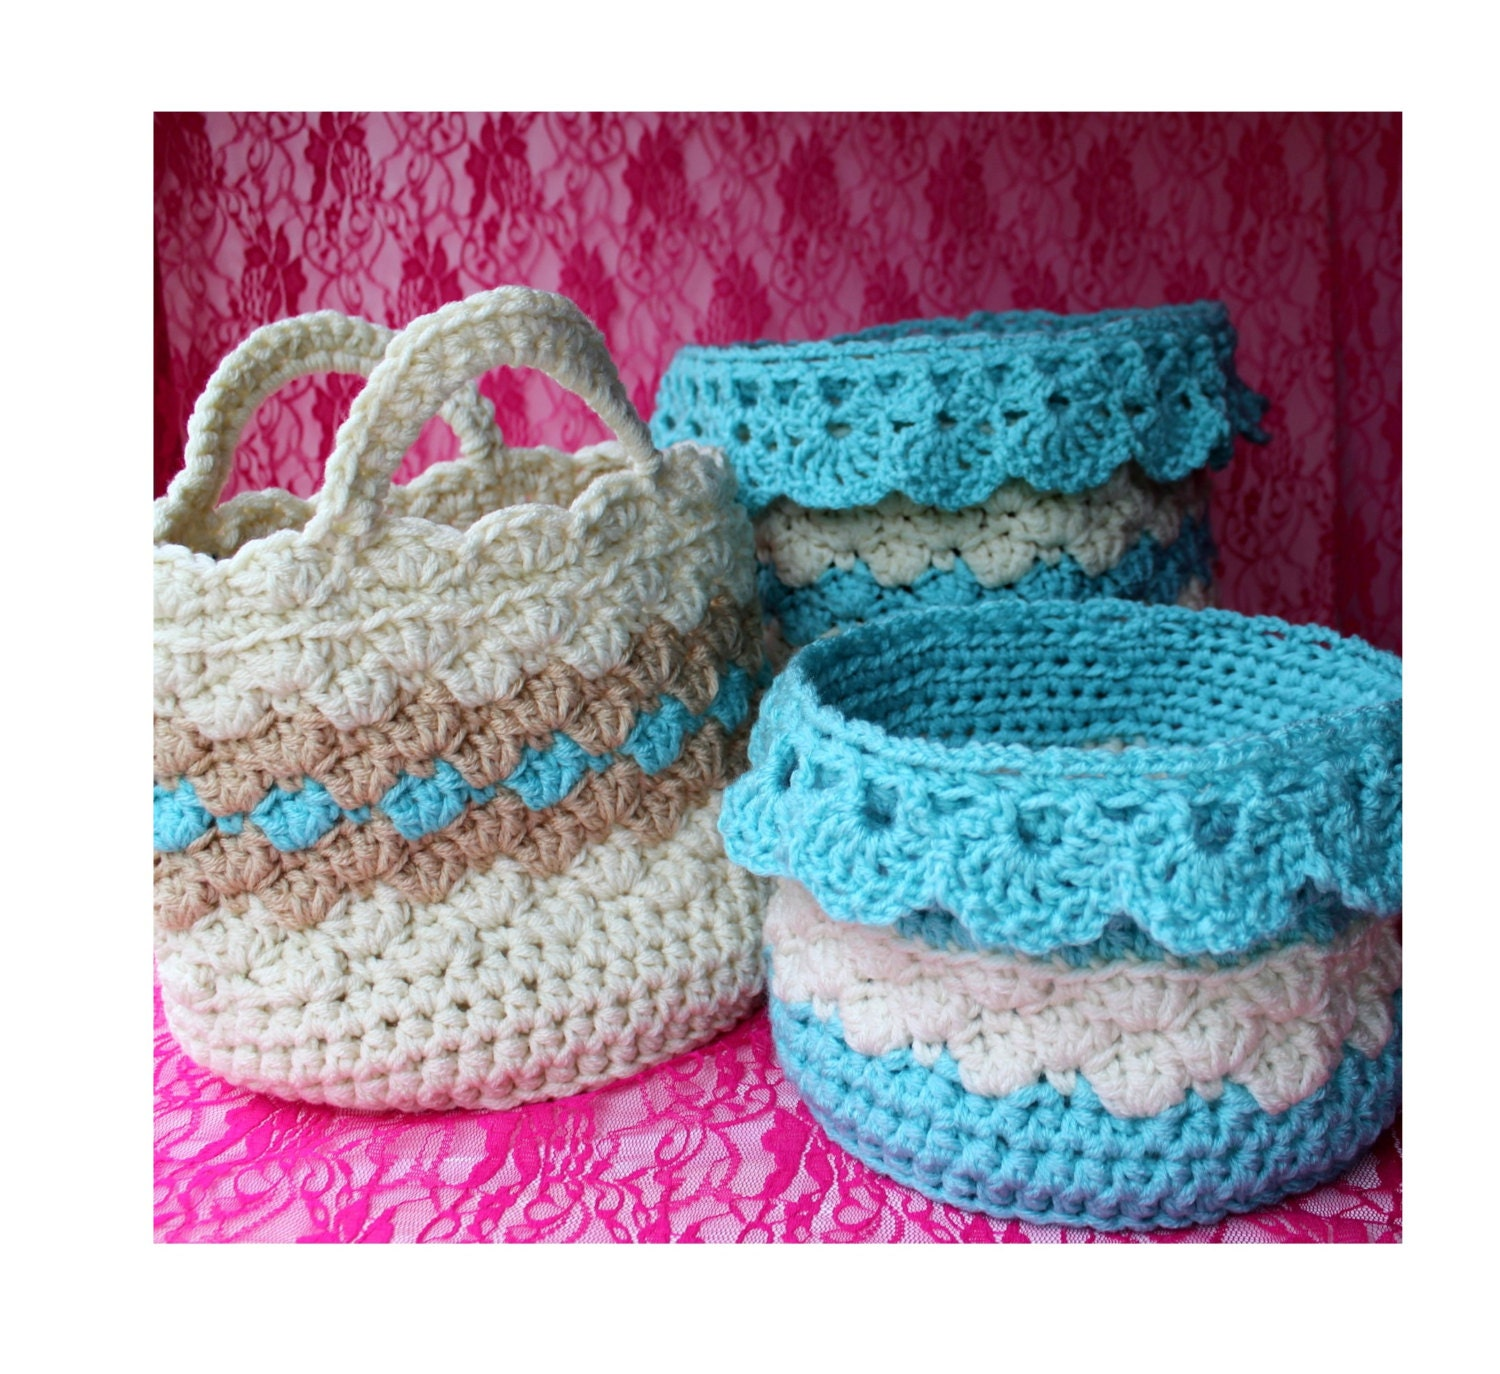 Crochet Wedding Gifts Patterns: Lace Crochet Pattern